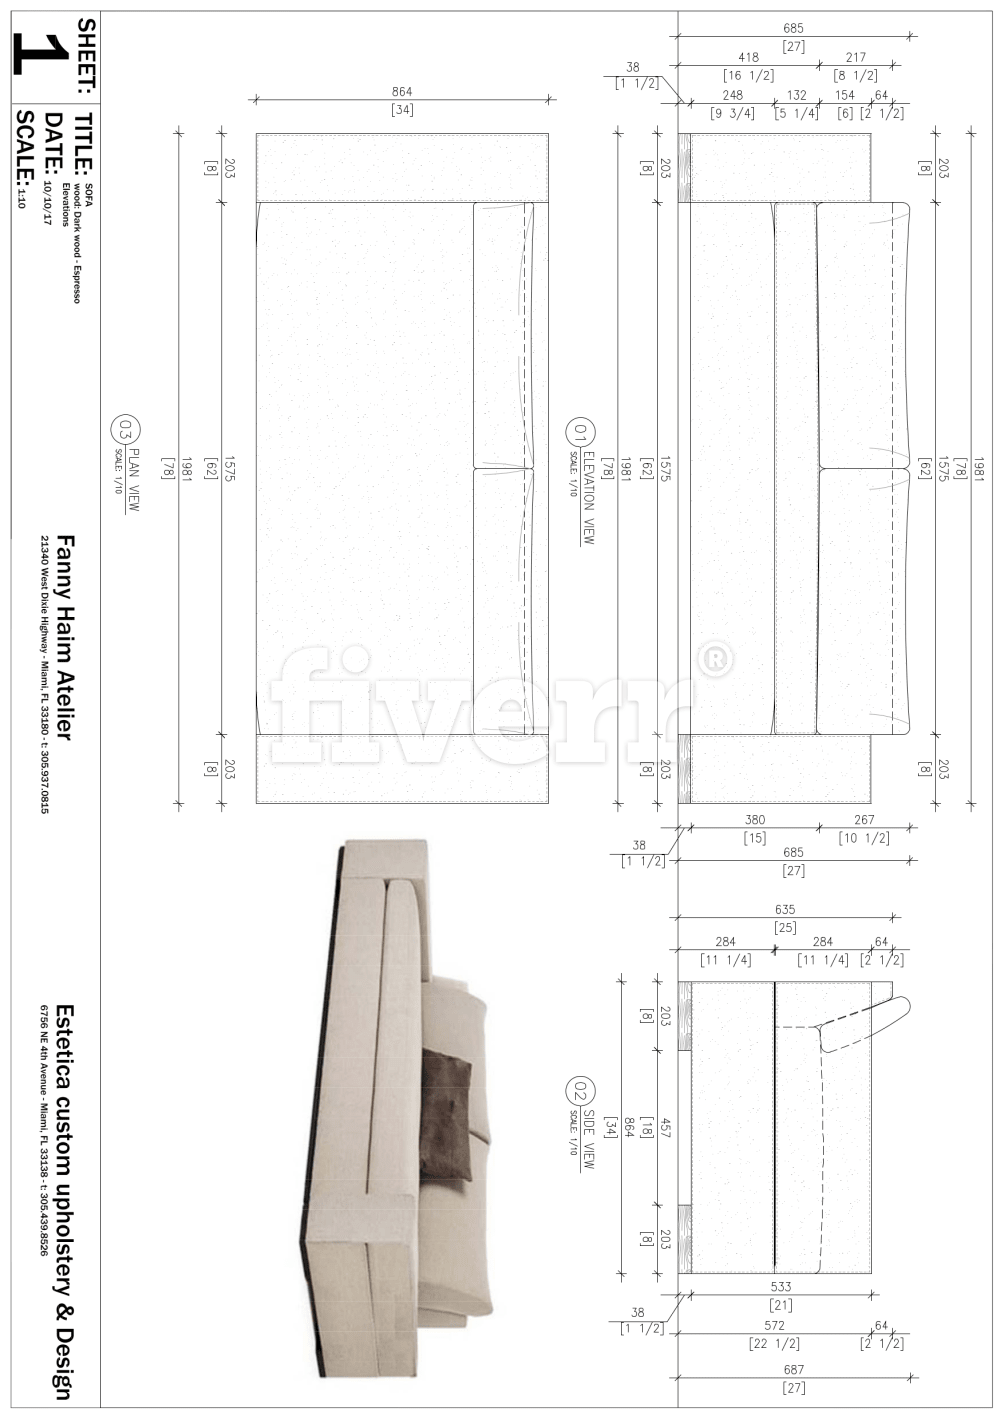 Ehabmagdy I Will Do Your Furniture Woodworking Millwork And Joinery Shop Drawing By Autocad For 100 On Fiverr Com Drawing Furniture Furniture Details Drawing Colorful Furniture